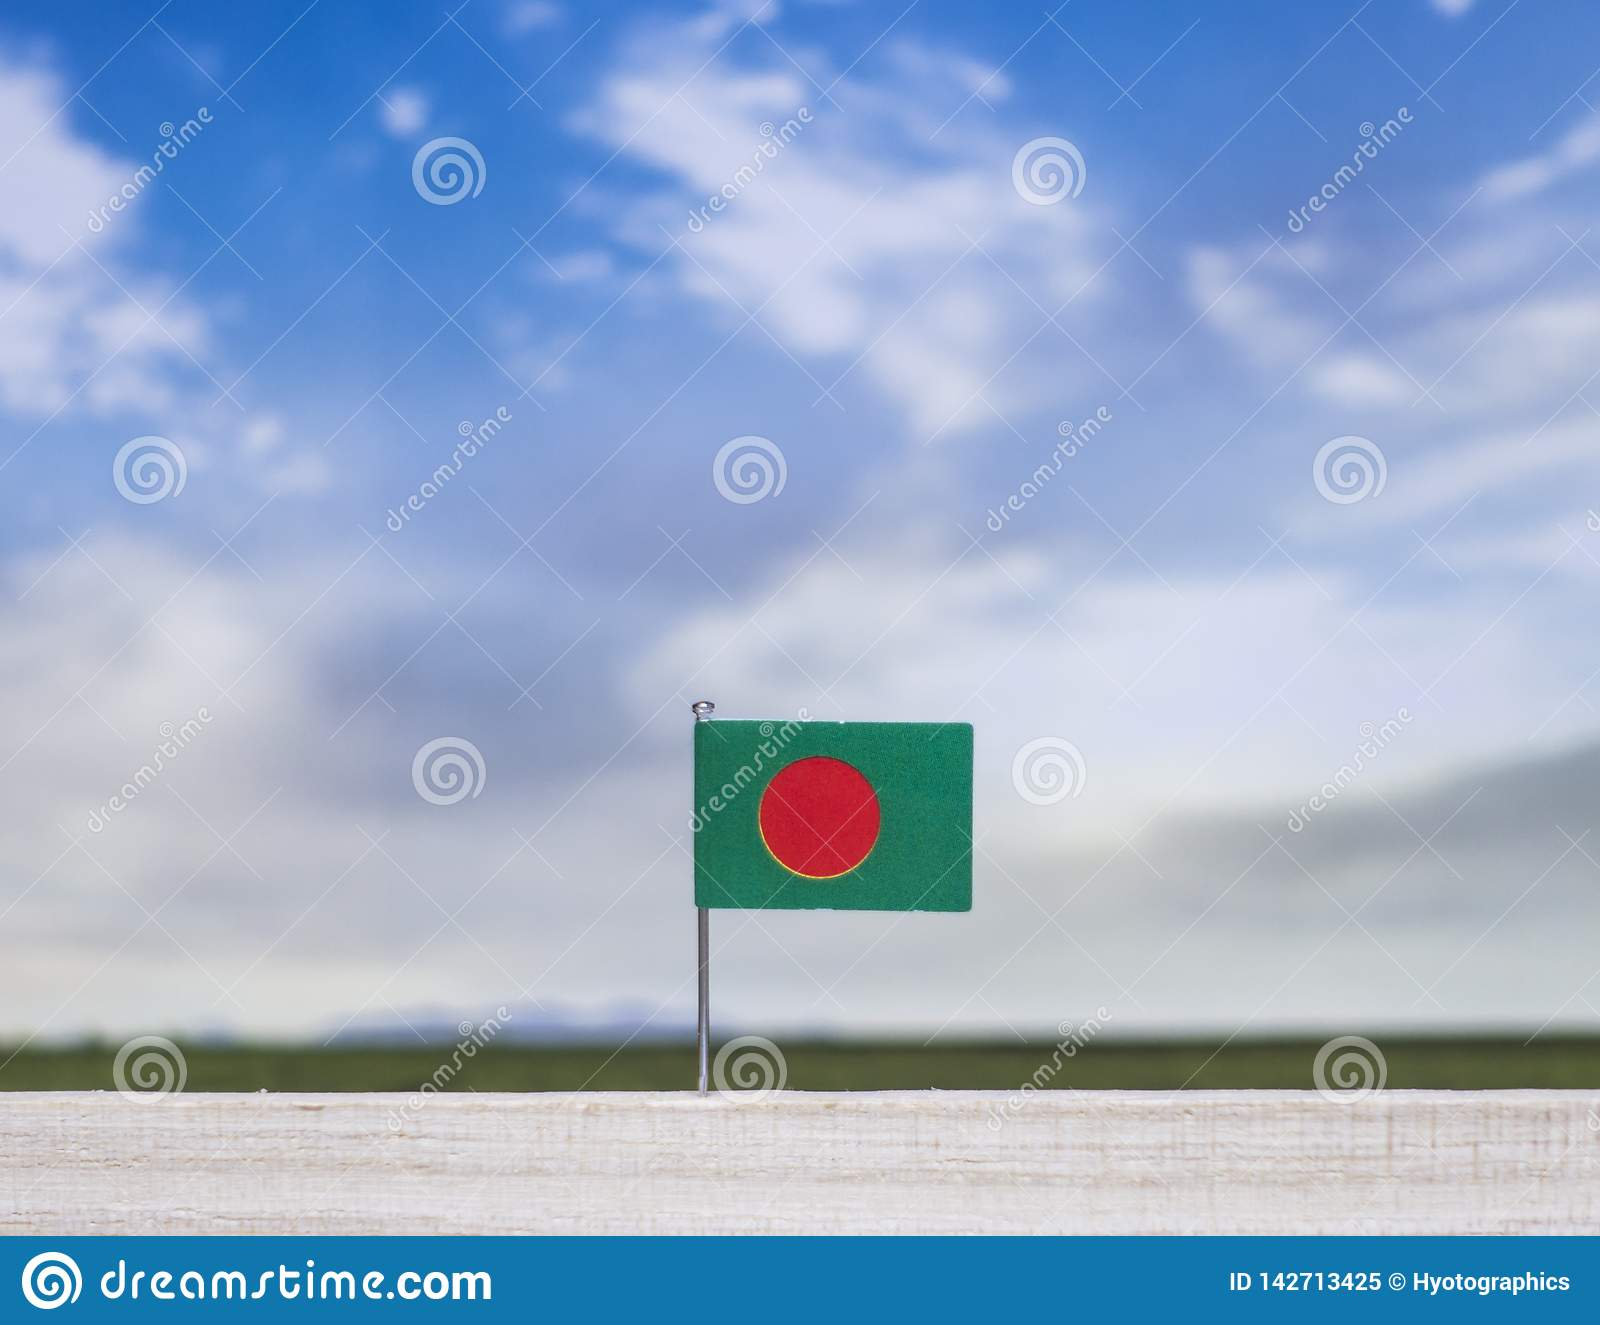 Flag of Bangladesh with vast meadow and blue sky behind it.